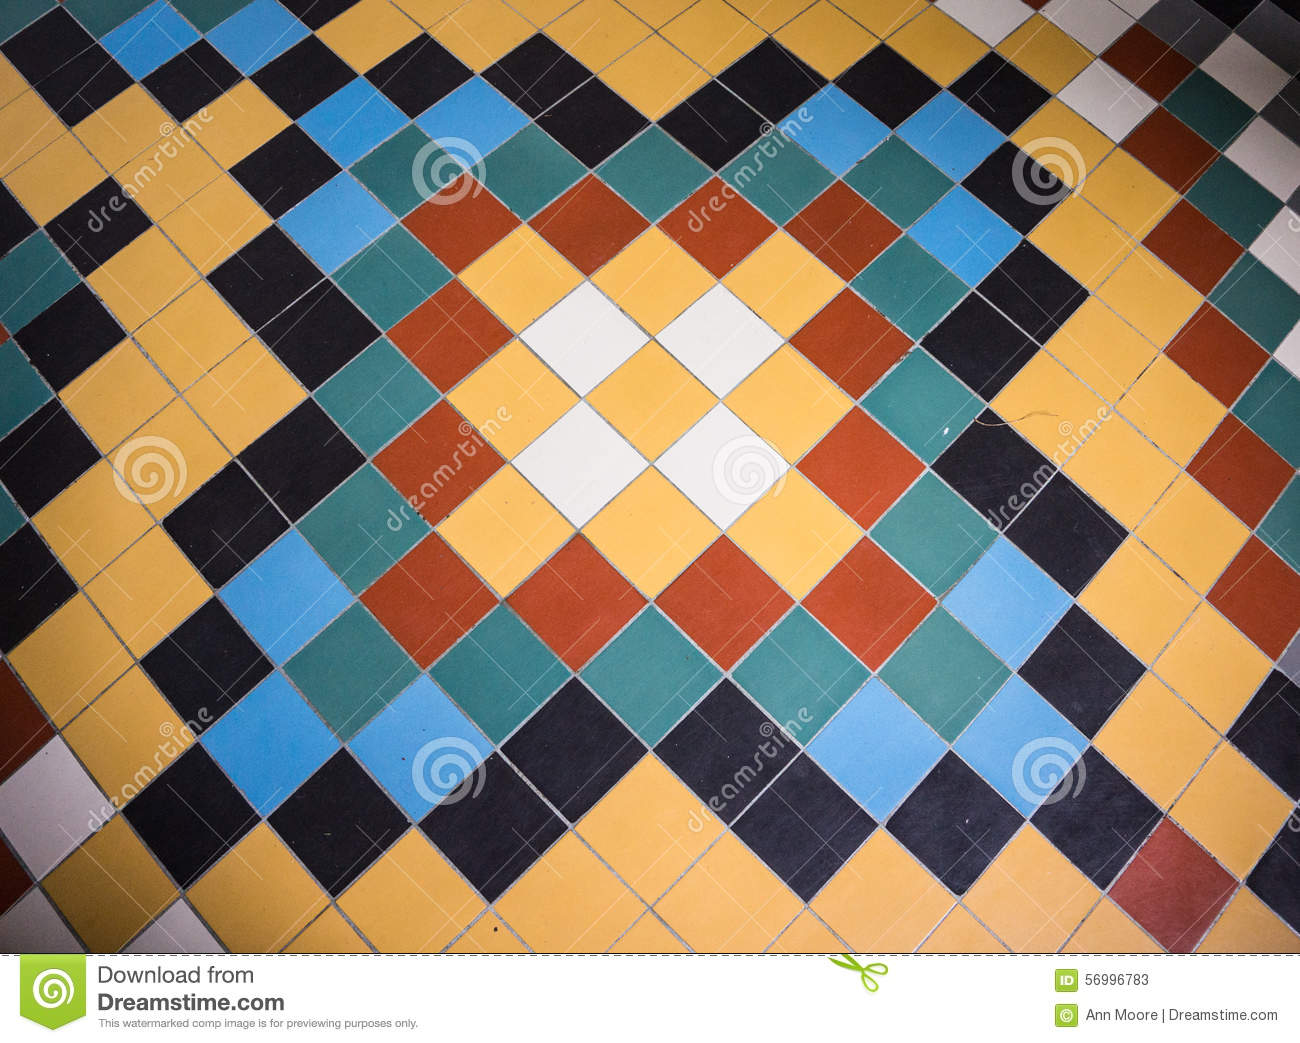 Floor tile art image collections home flooring design pattern on tile floor in art deco style and colors stock photo royalty free stock photo dailygadgetfo Choice Image